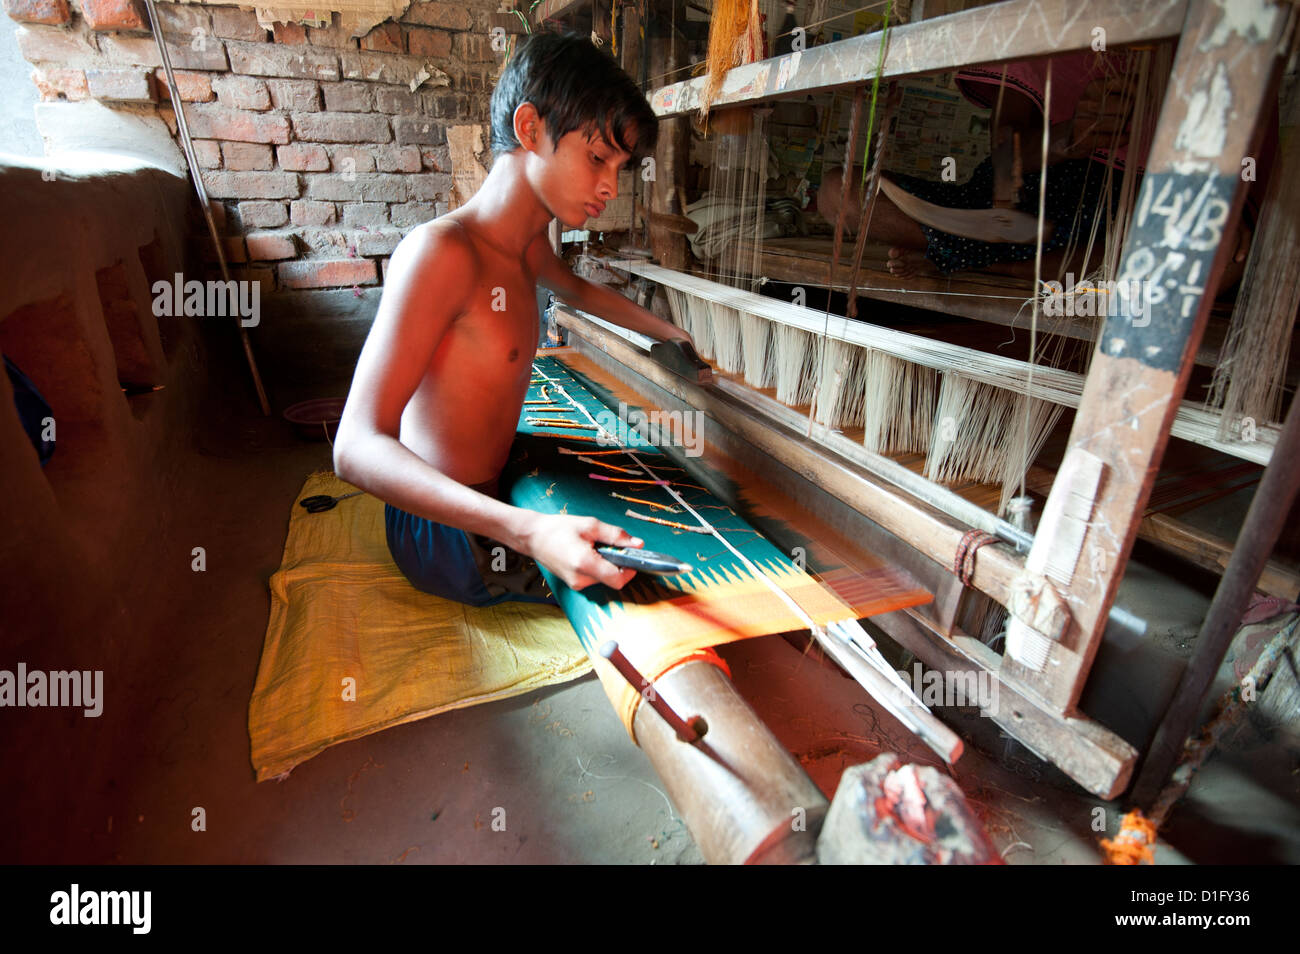 Young boy at loom weaving patterned silk sari using several spools of silk, Vaidyanathpur weaving village, Orissa, - Stock Image